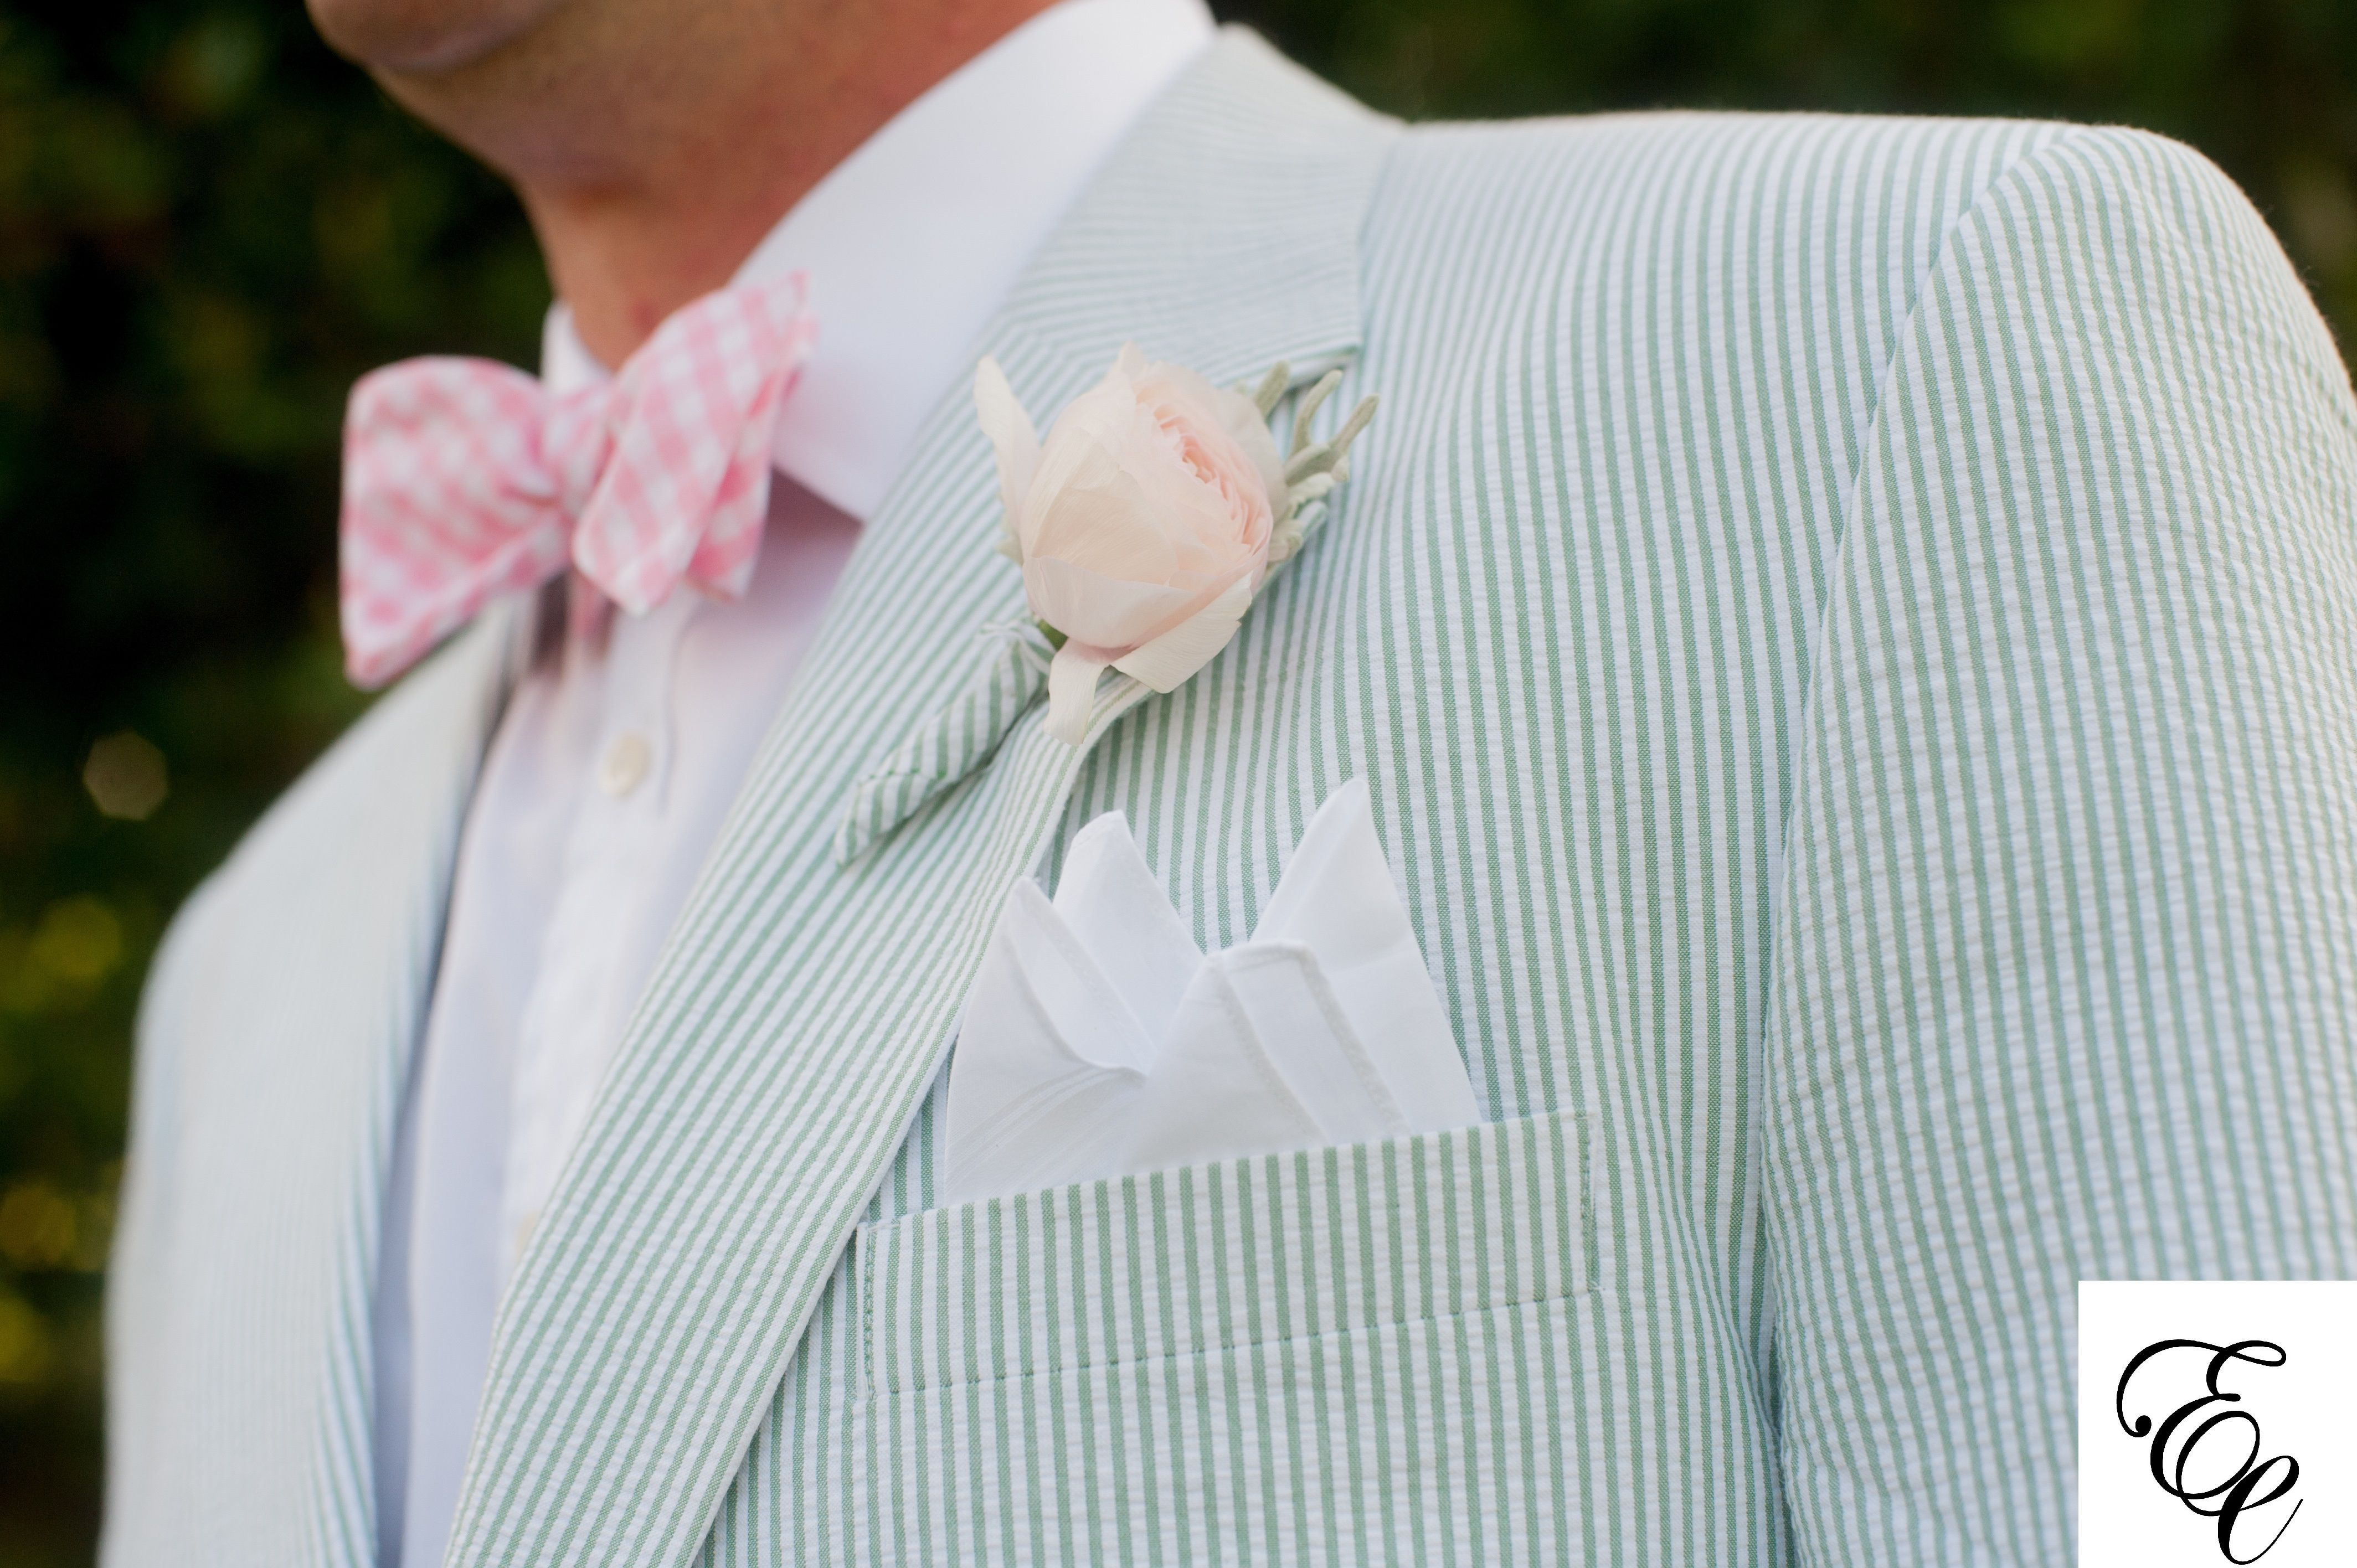 Pale Pink Rose Boutonniere wrapped in seersucker fabric to match the ...